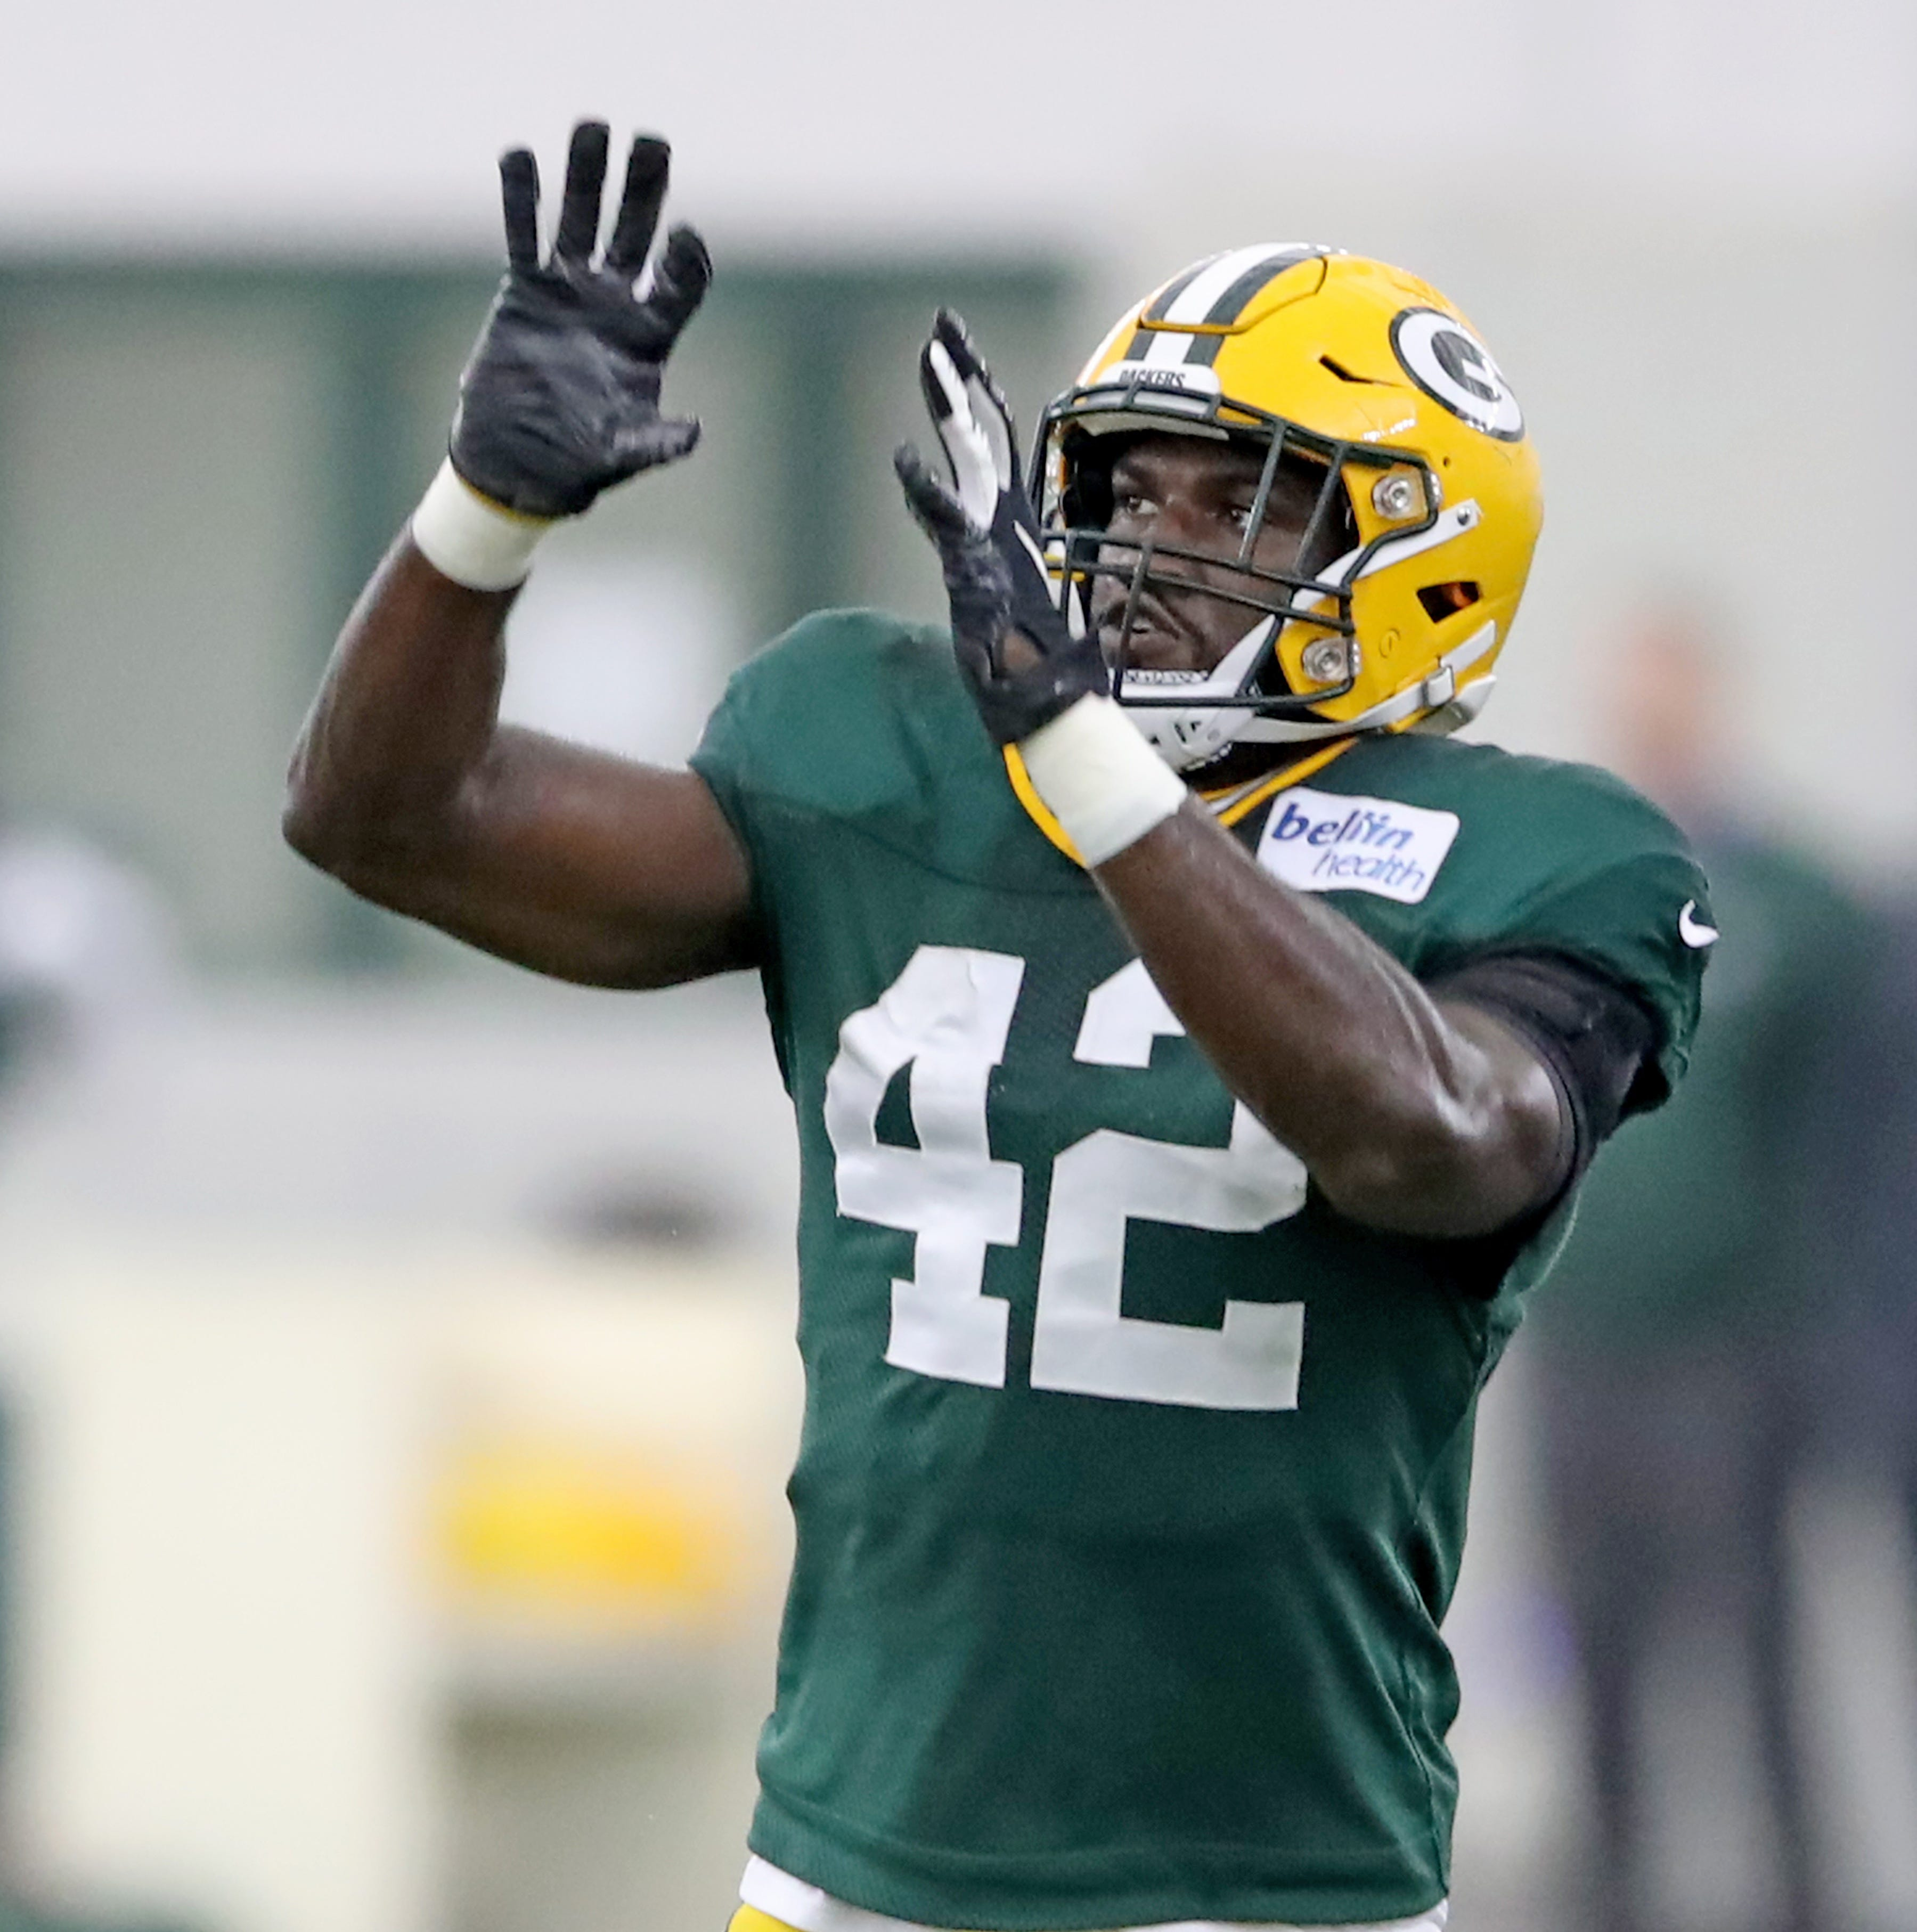 Packers rookie ILB Oren Burks could be returning at just the right time against Washington